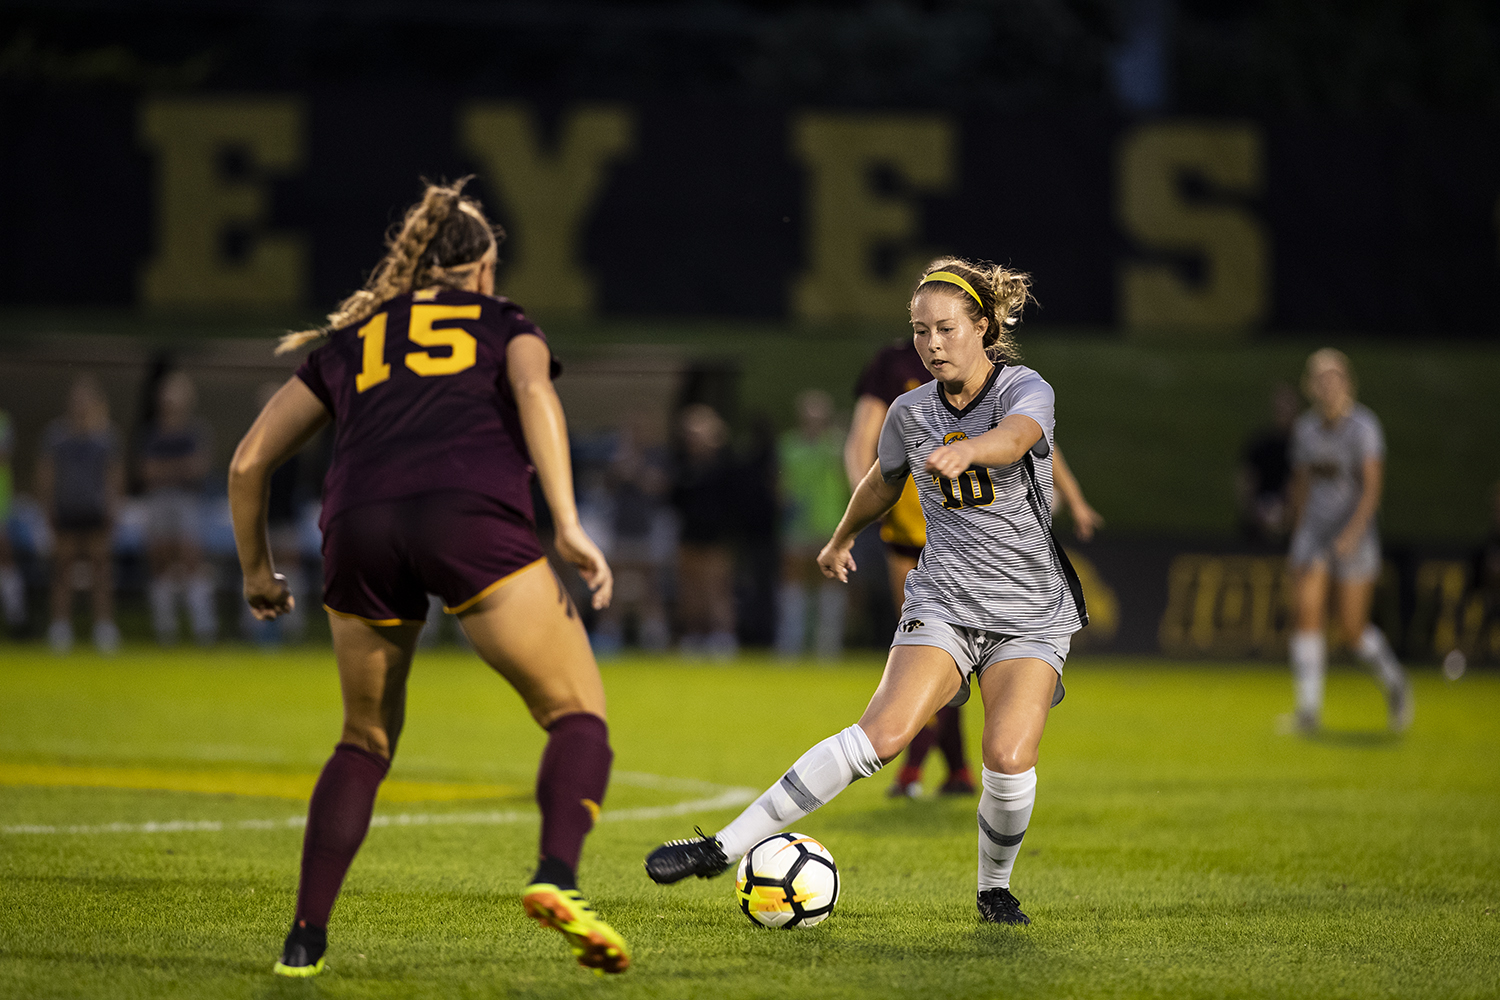 Iowa Midfielder Natalie Winters (10) plays a pass during Iowa's game against Central Michigan on Friday, Aug. 31, 2018. The Hawkeyes defeated the Chippewas 3-1. Winters scored the Hawkeyes' third goal on a penalty kick in the second half. (Nick Rohlman/The Daily Iowan)